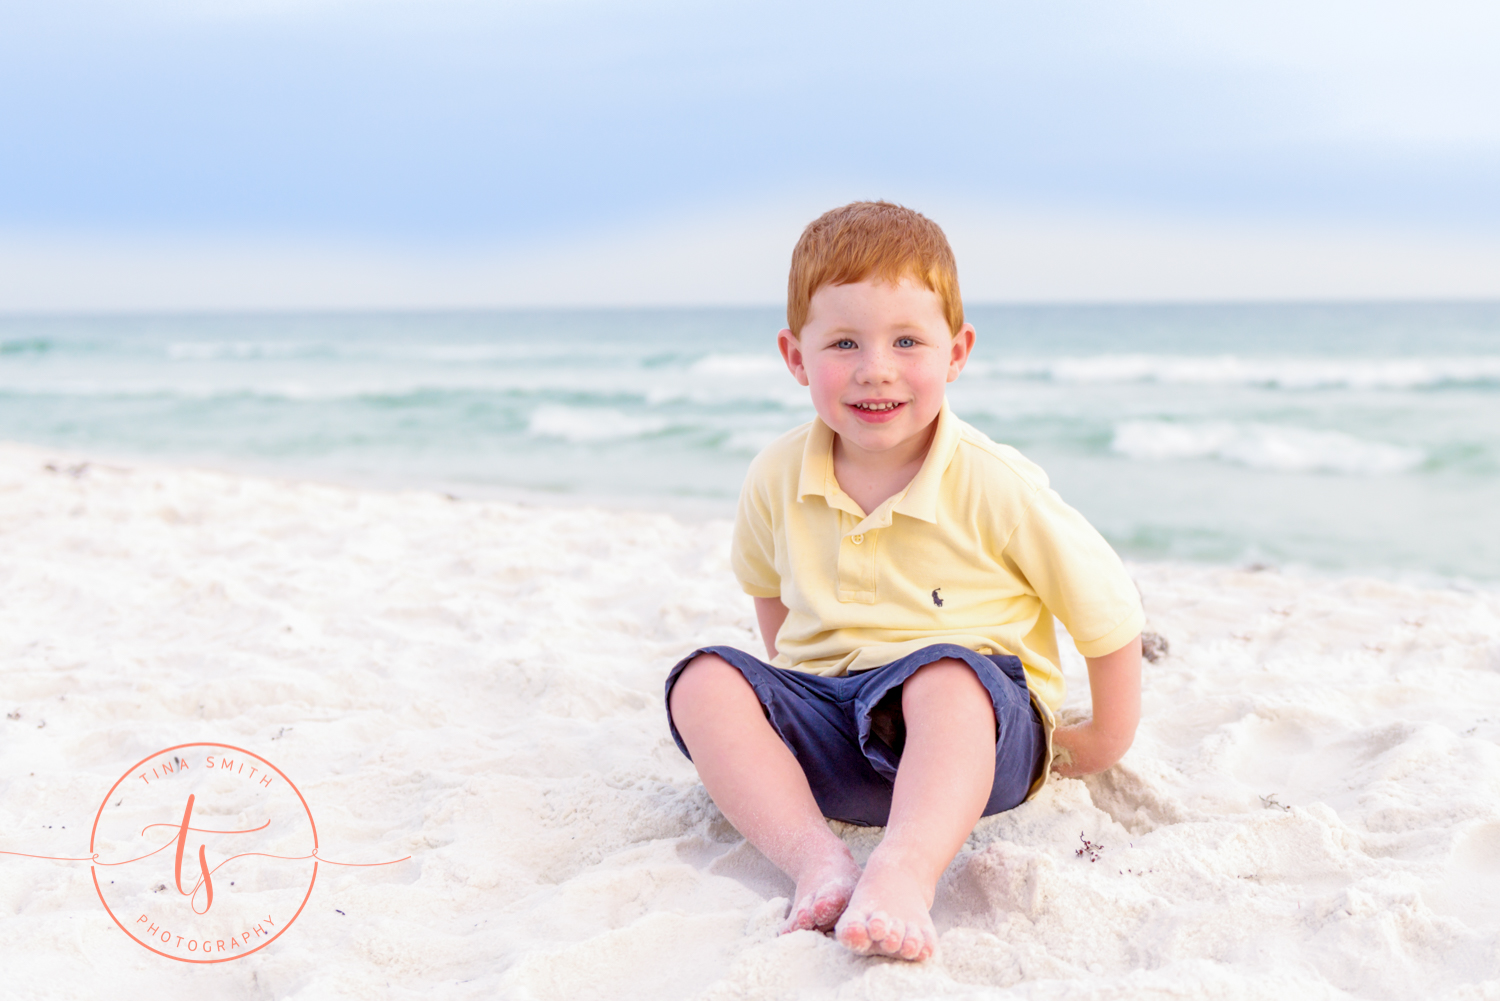 red headed little boy sitting on the beach in destin playing in the sand